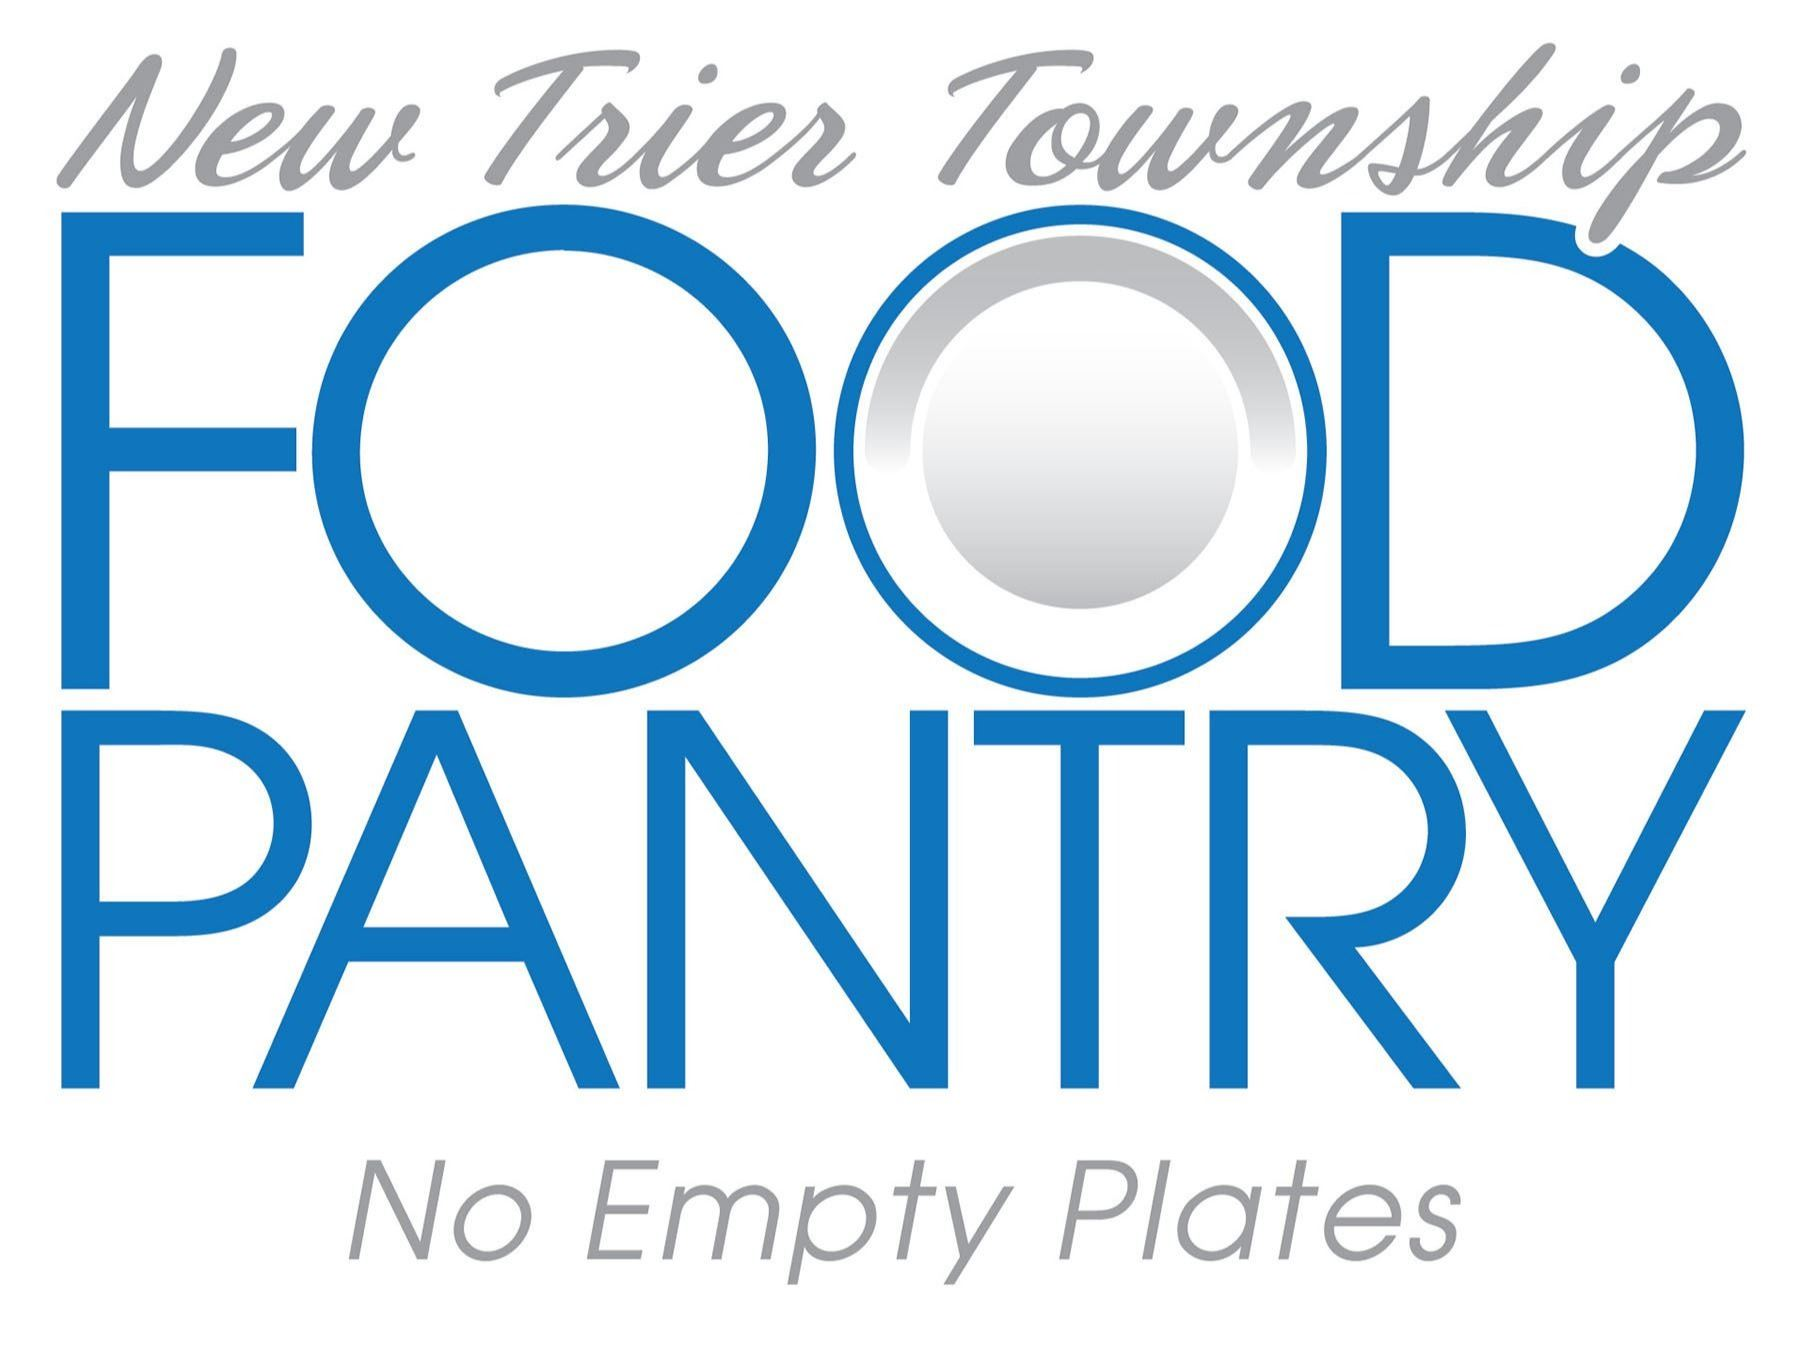 ntt_food_pantry_300